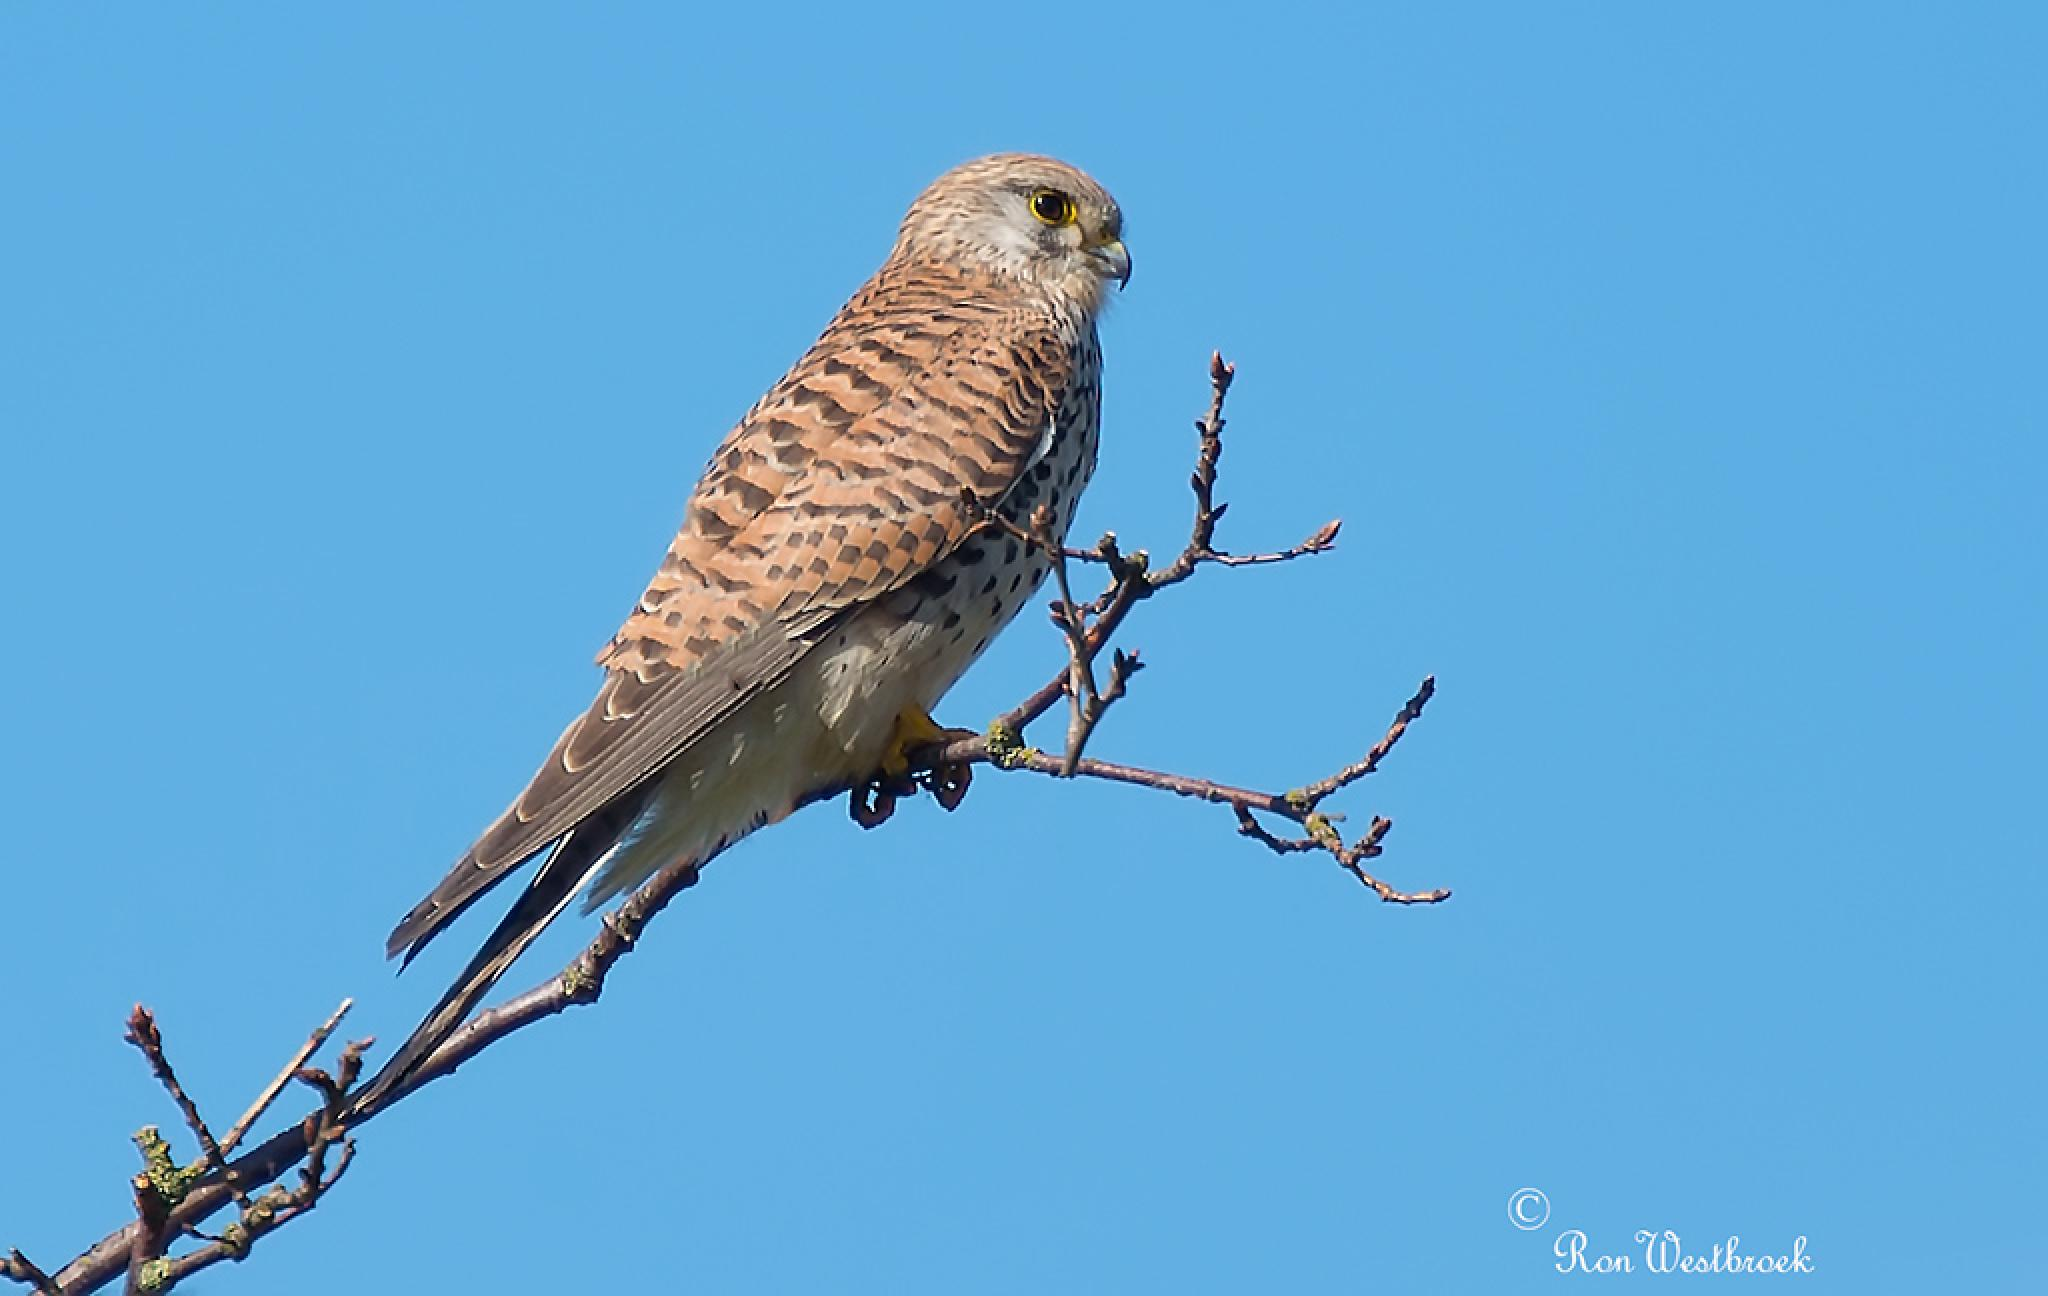 Kestrel, Falco tinnunculus by Ron Westbroek